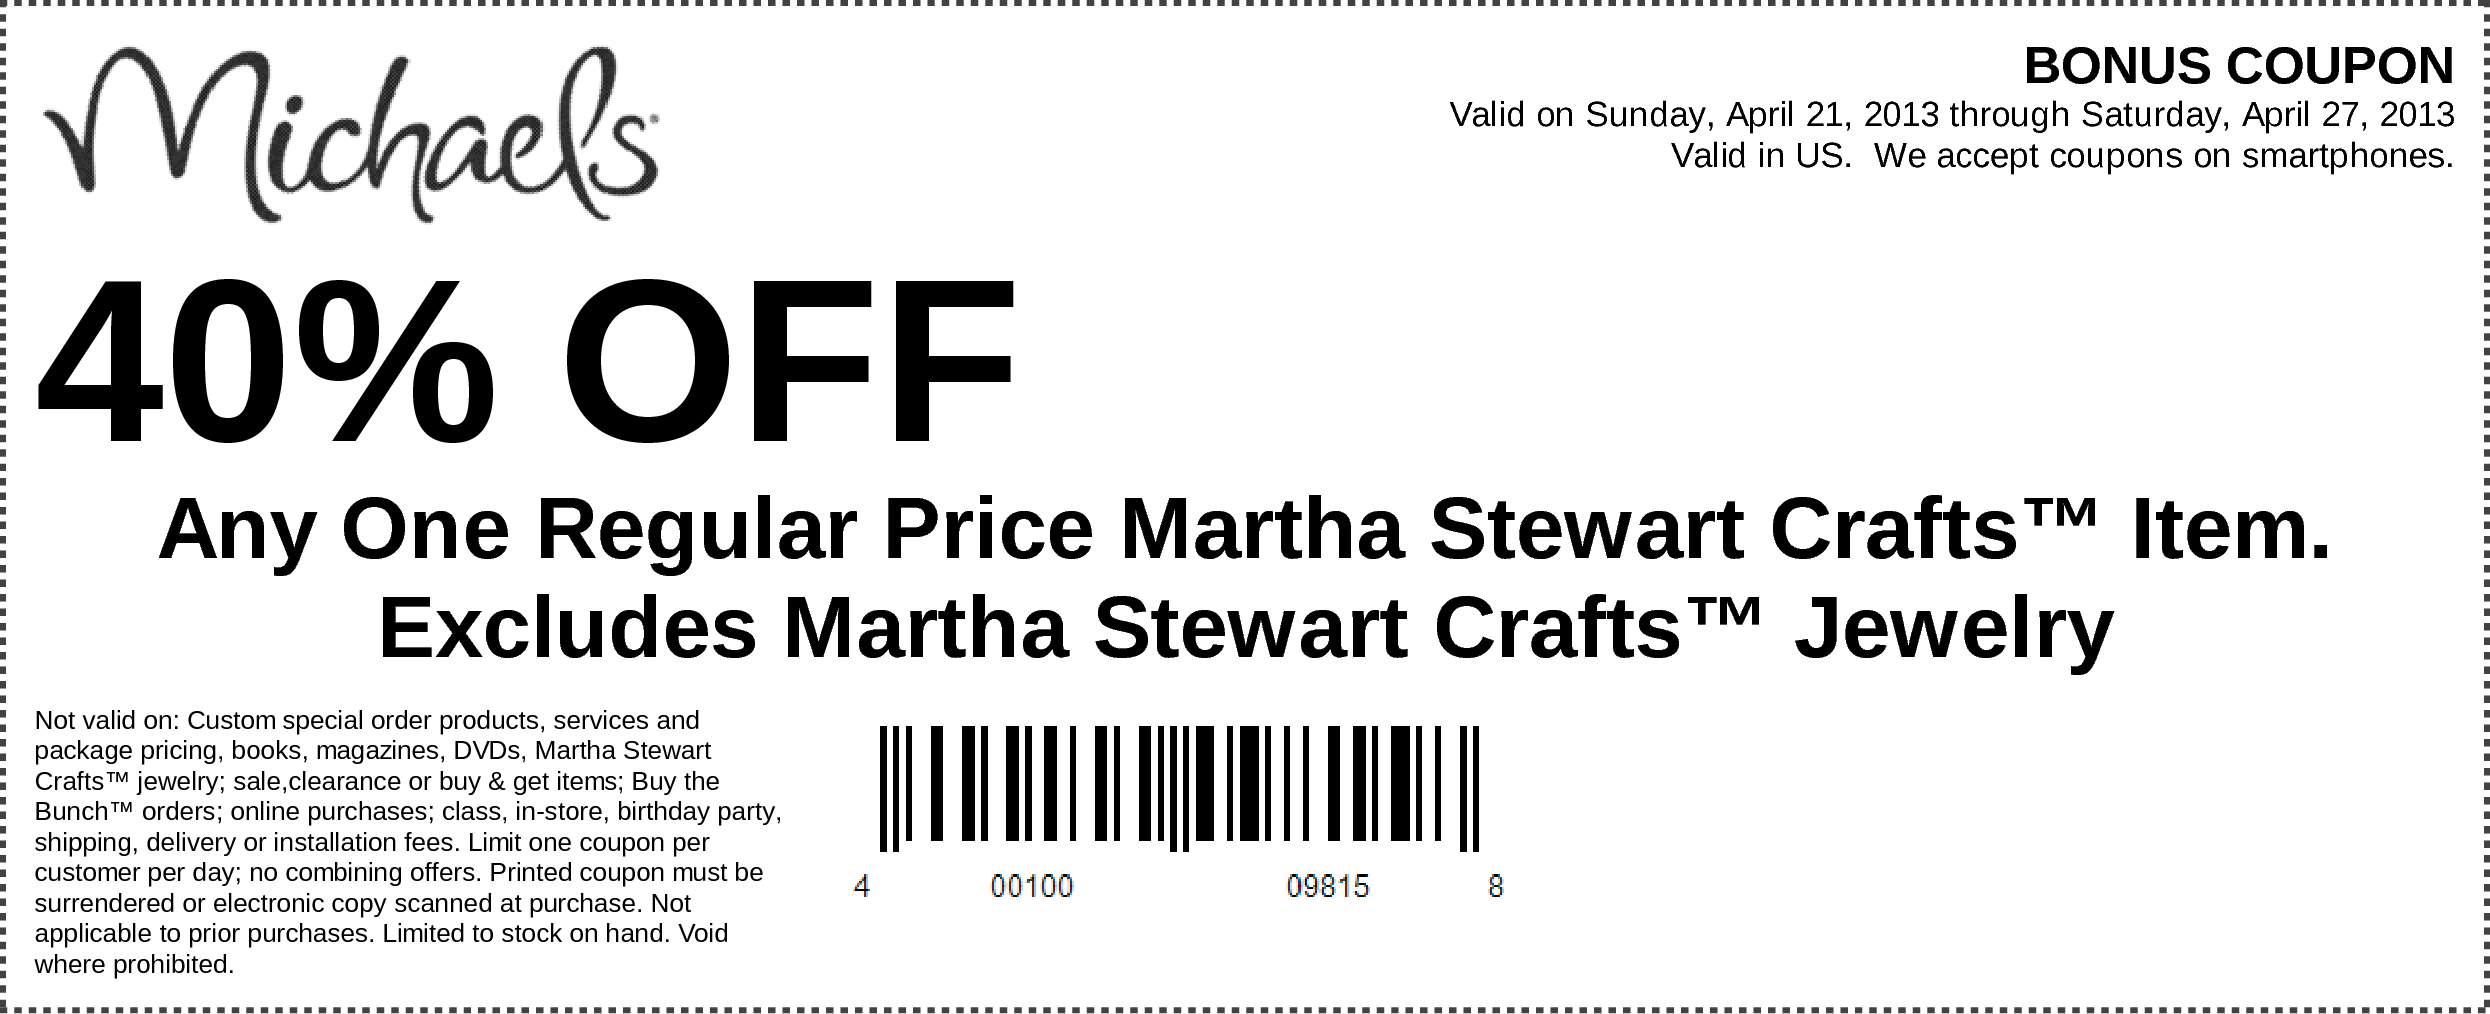 Any One Regular Price Martha Stewart Crafts™ Item. Excludes Martha Stewart Crafts™ Jewelry